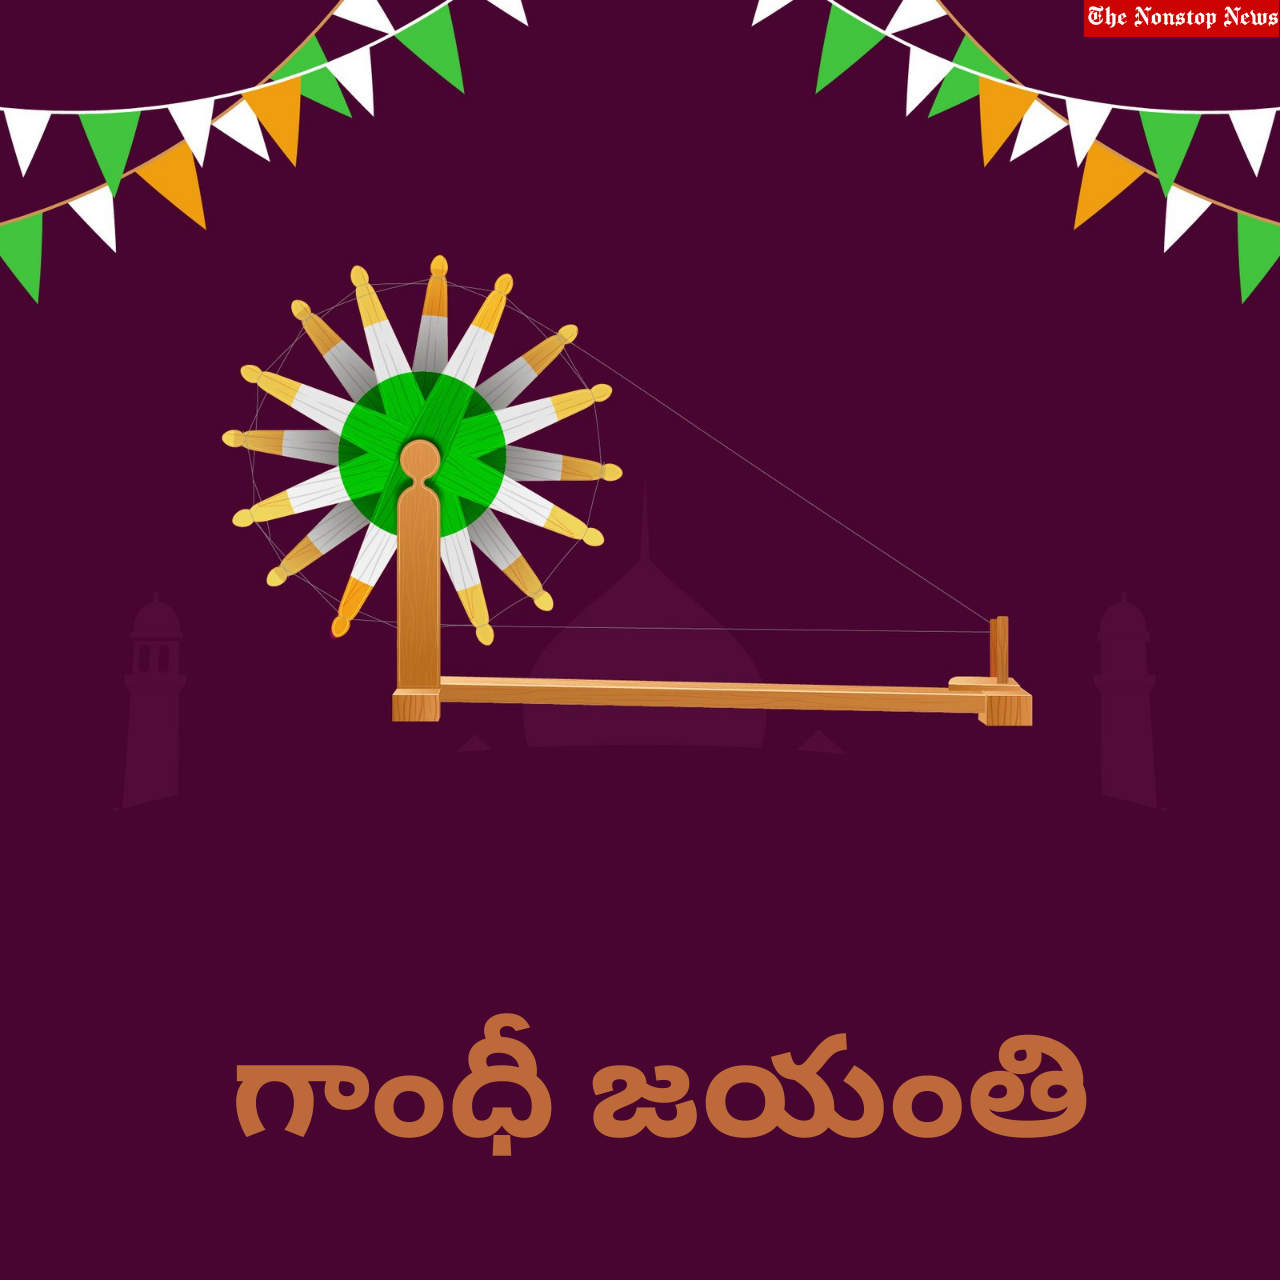 Gandhi Jayanti 2021 Telugu Wishes, Quotes, Messages, Wishes, Greetings, and HD Images to share